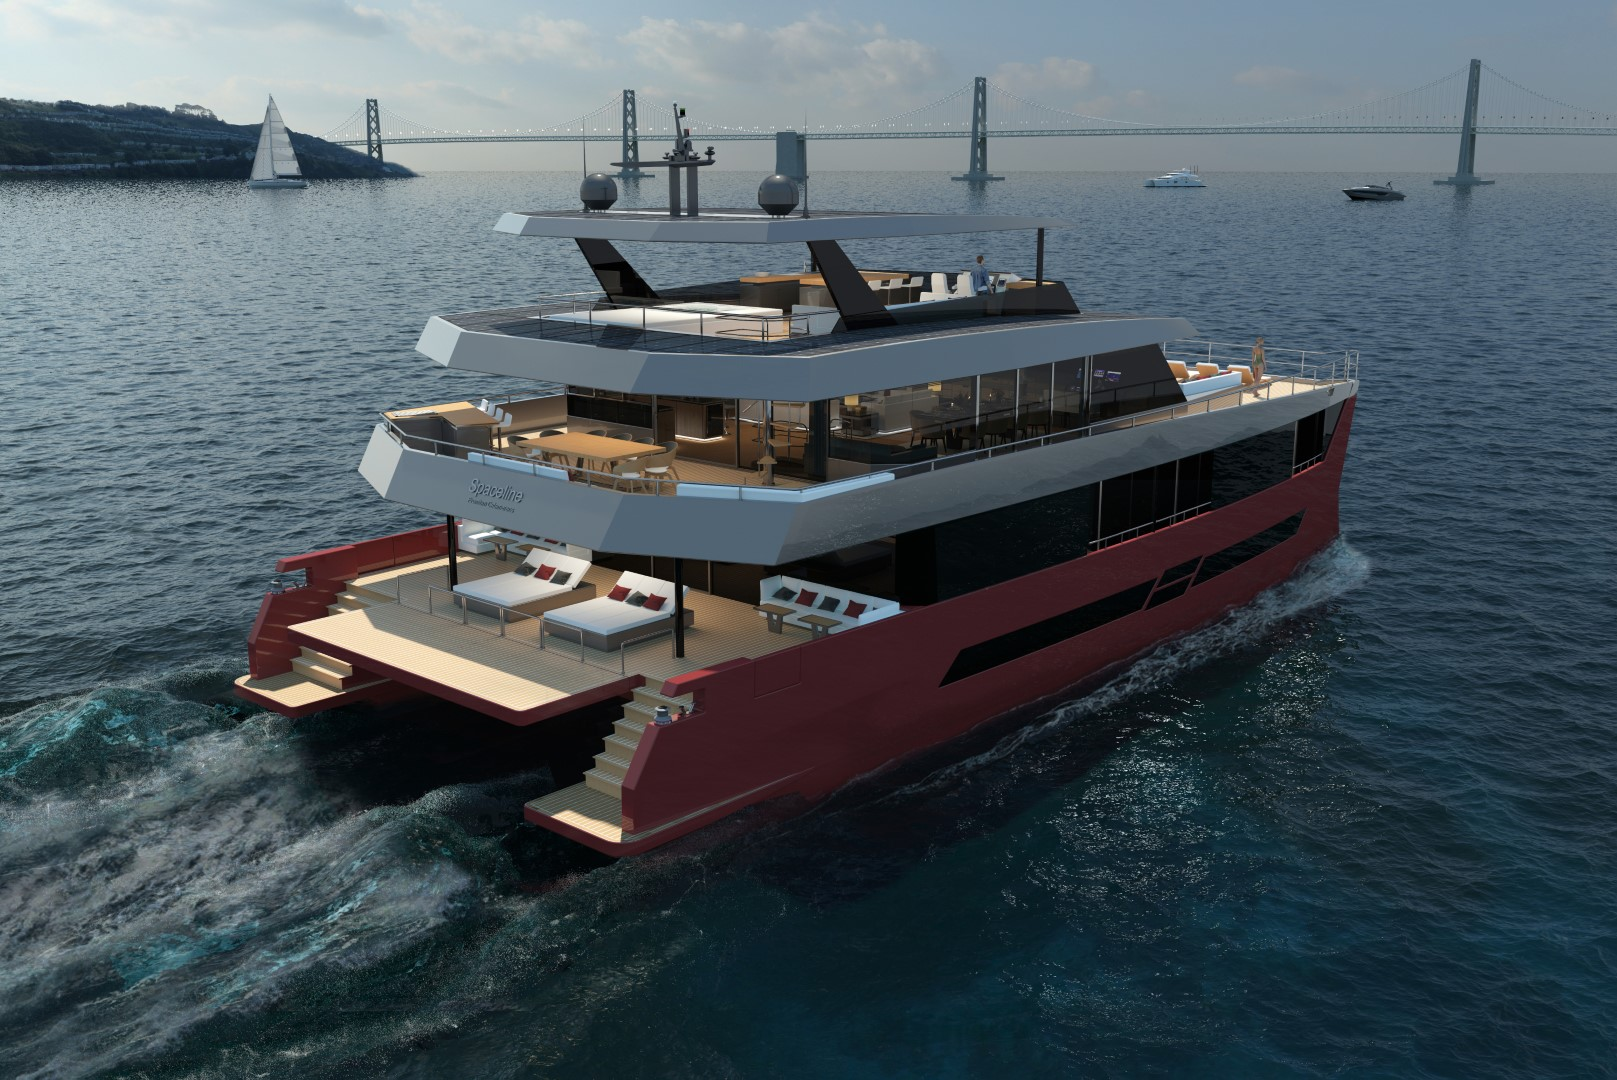 The eco-friendly NexGen Spaceline 100 Hybrid comes to change the cruising experience